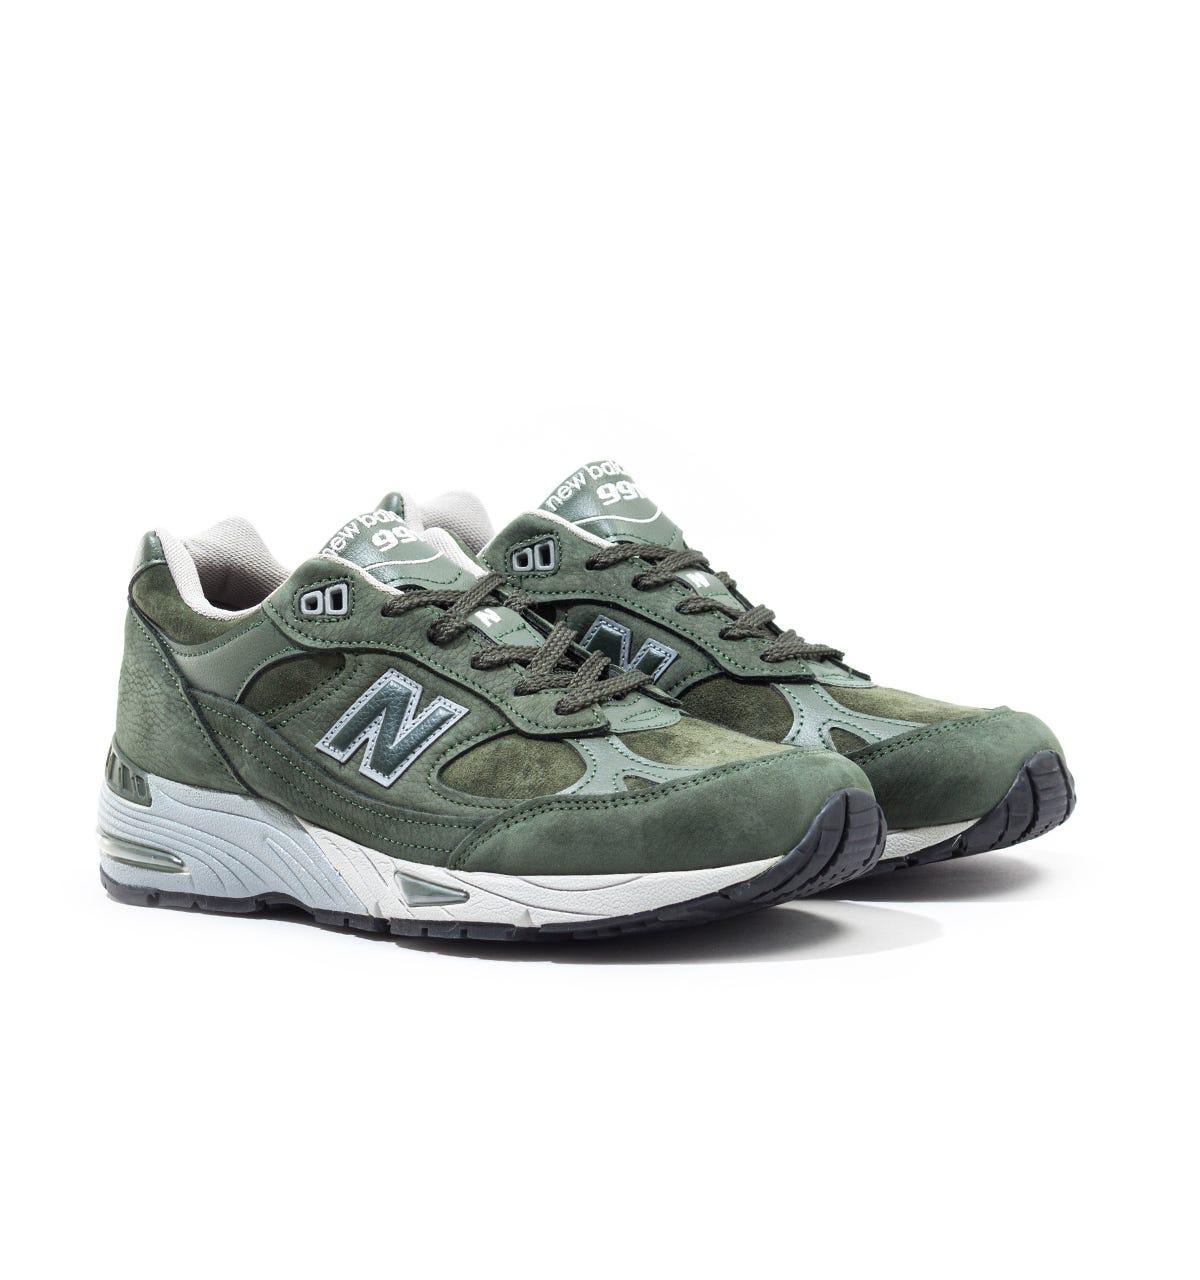 New Balance 991 Made In England Dark Green & Grey Suede Trainers ...